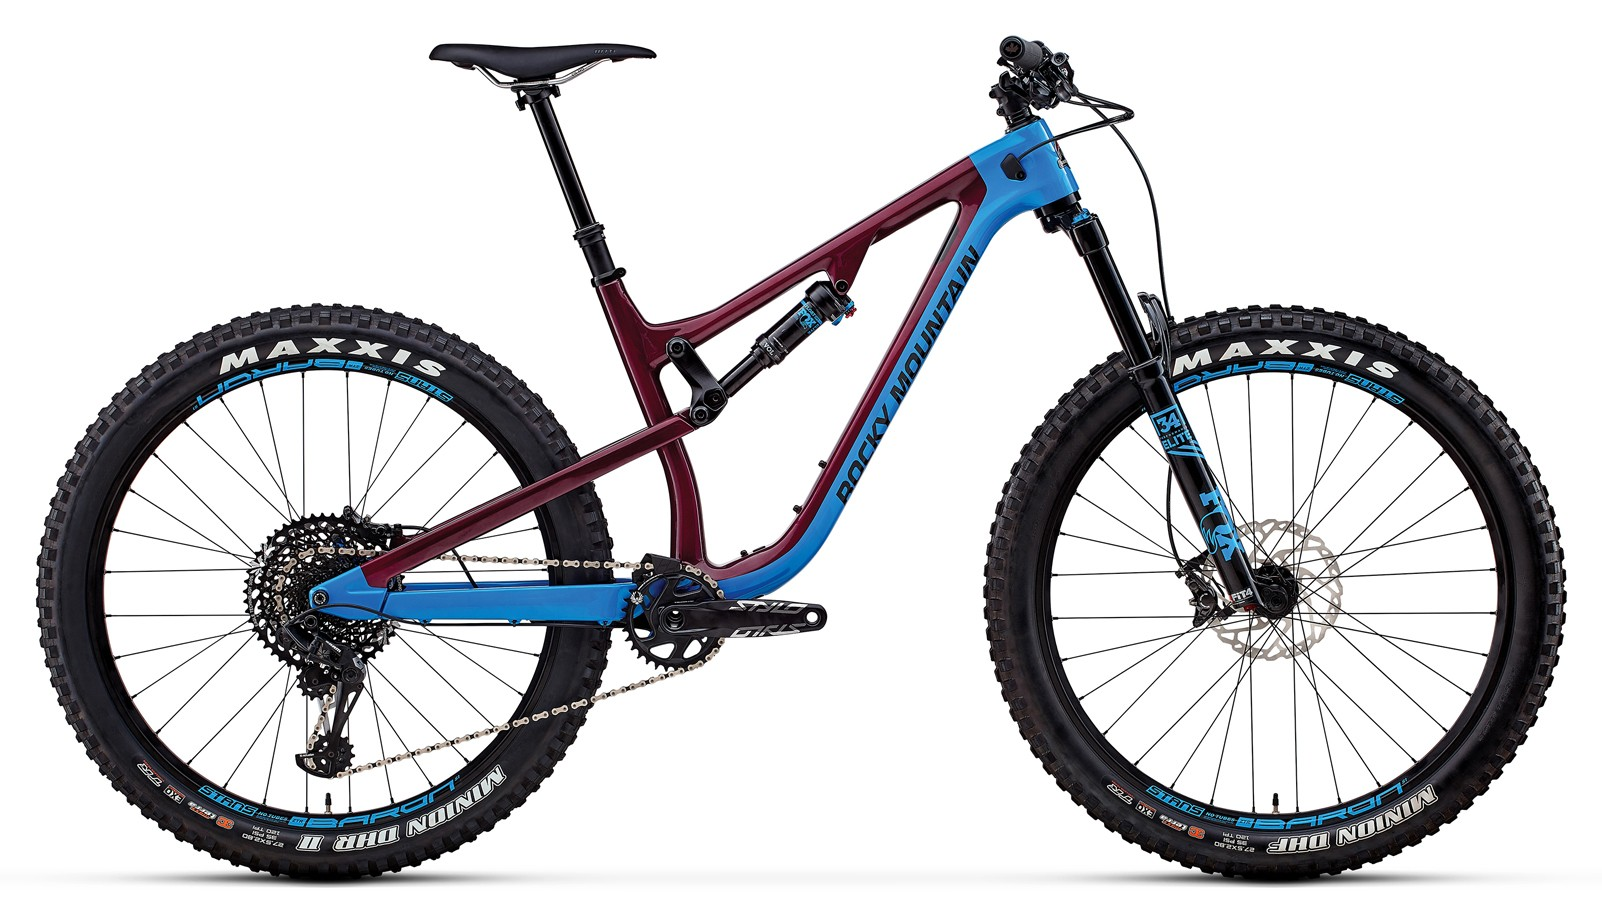 The Pipeline Carbon 70 sits at the top of the heap